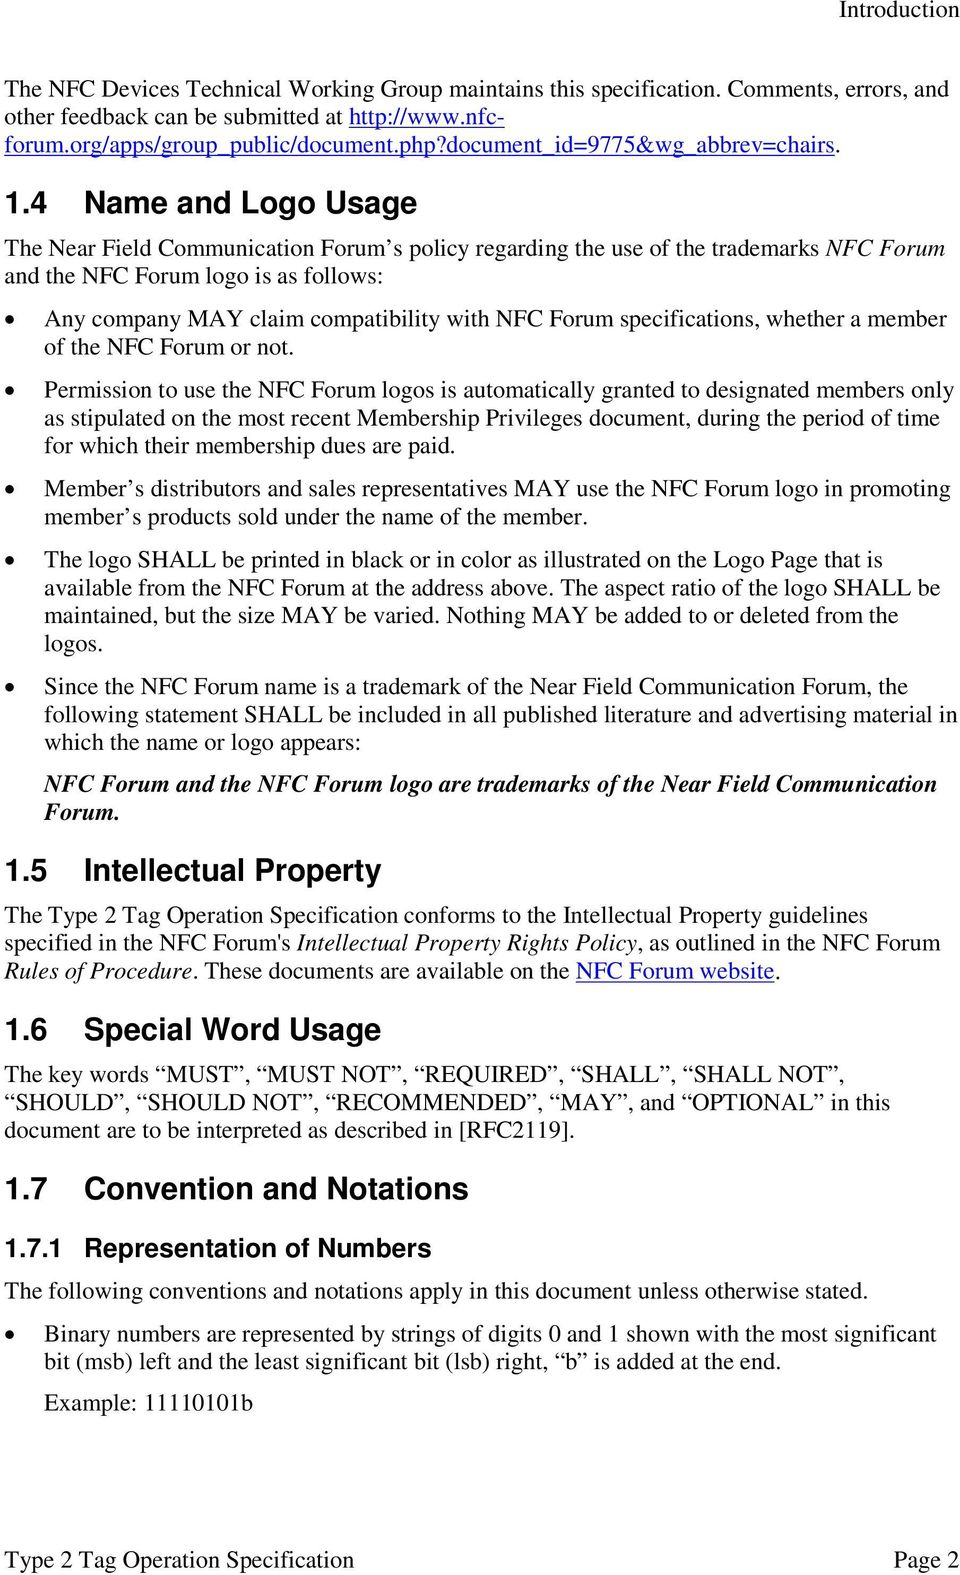 4 Name and Logo Usage The Near Field Communication Forum s policy regarding the use of the trademarks NFC Forum and the NFC Forum logo is as follows: Any company MAY claim compatibility with NFC